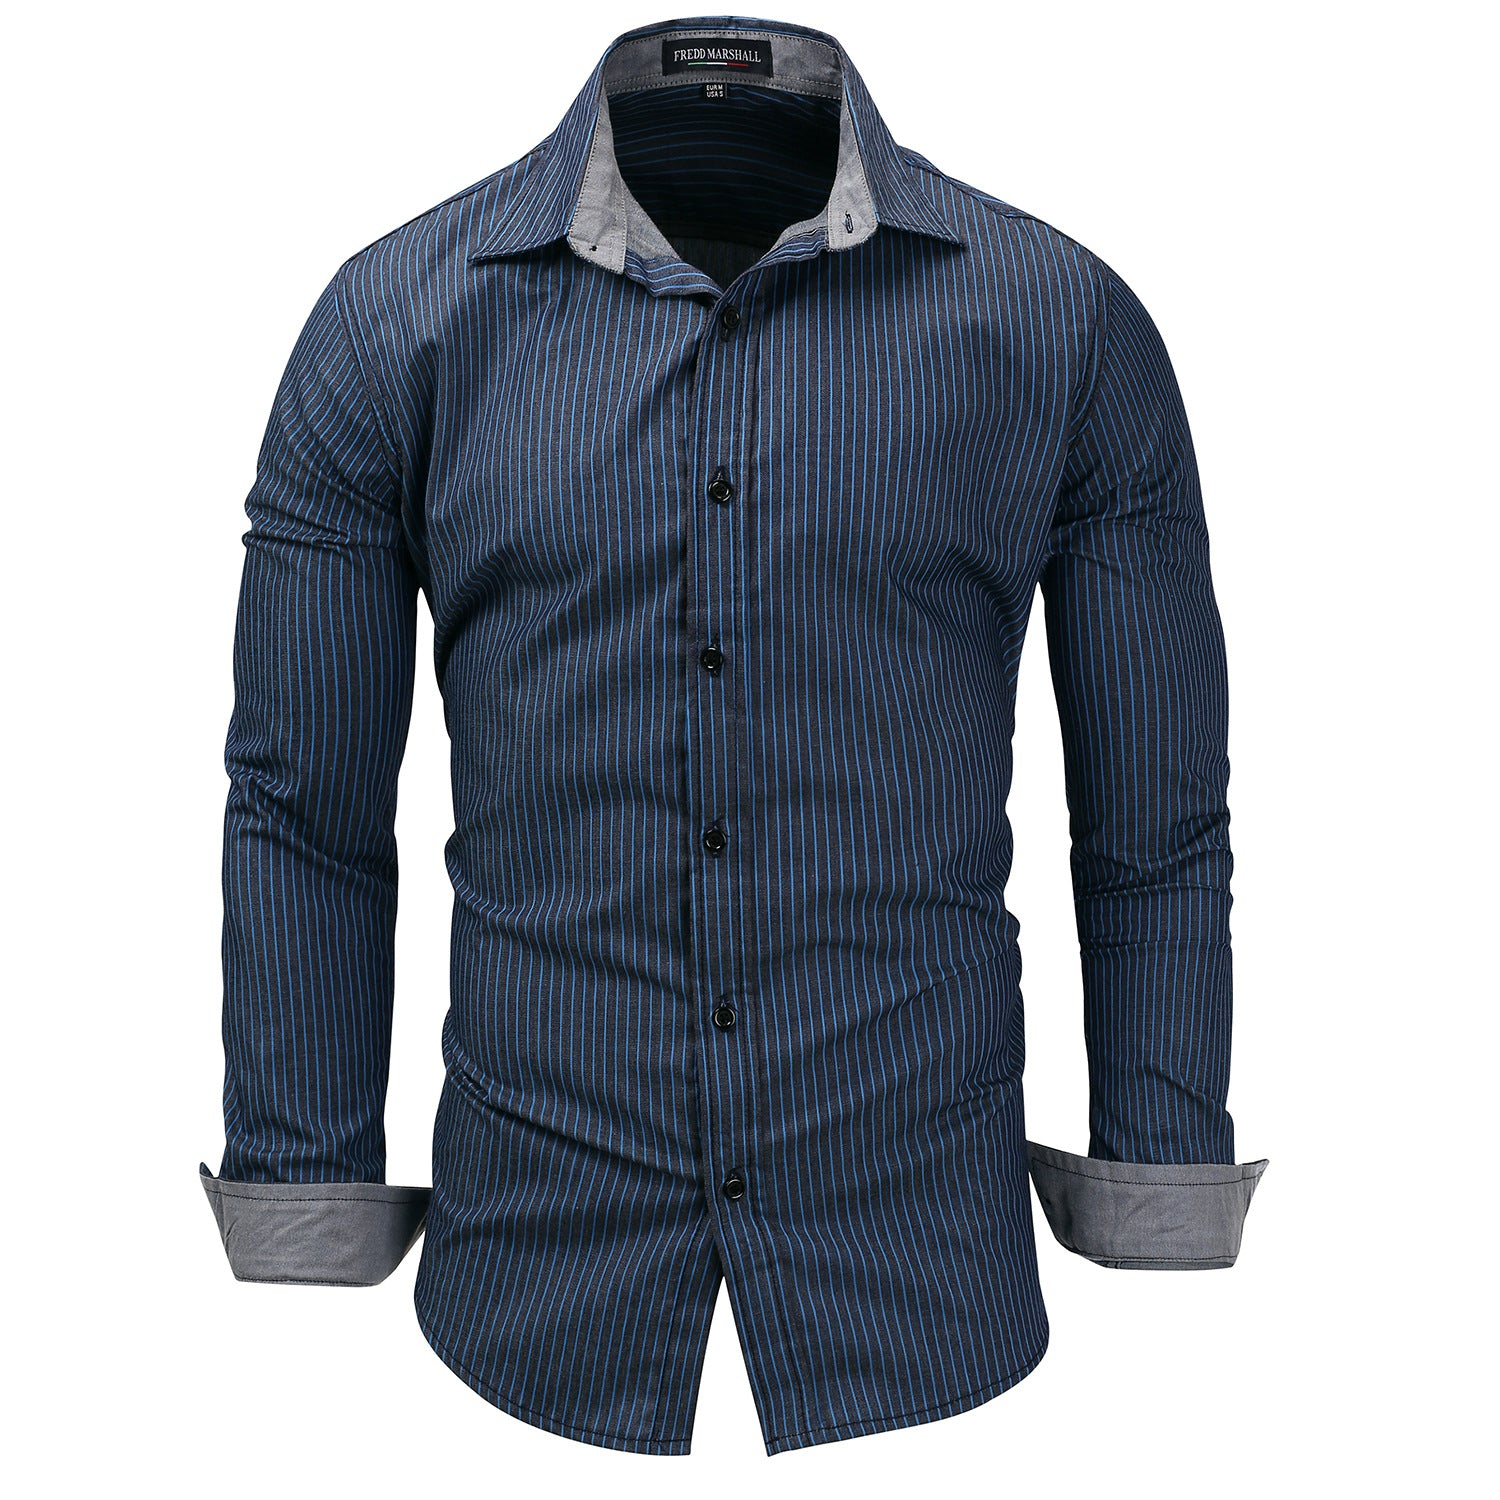 New Mens Striped Shirts Long Sleeve Cotton Shirt For Man Business